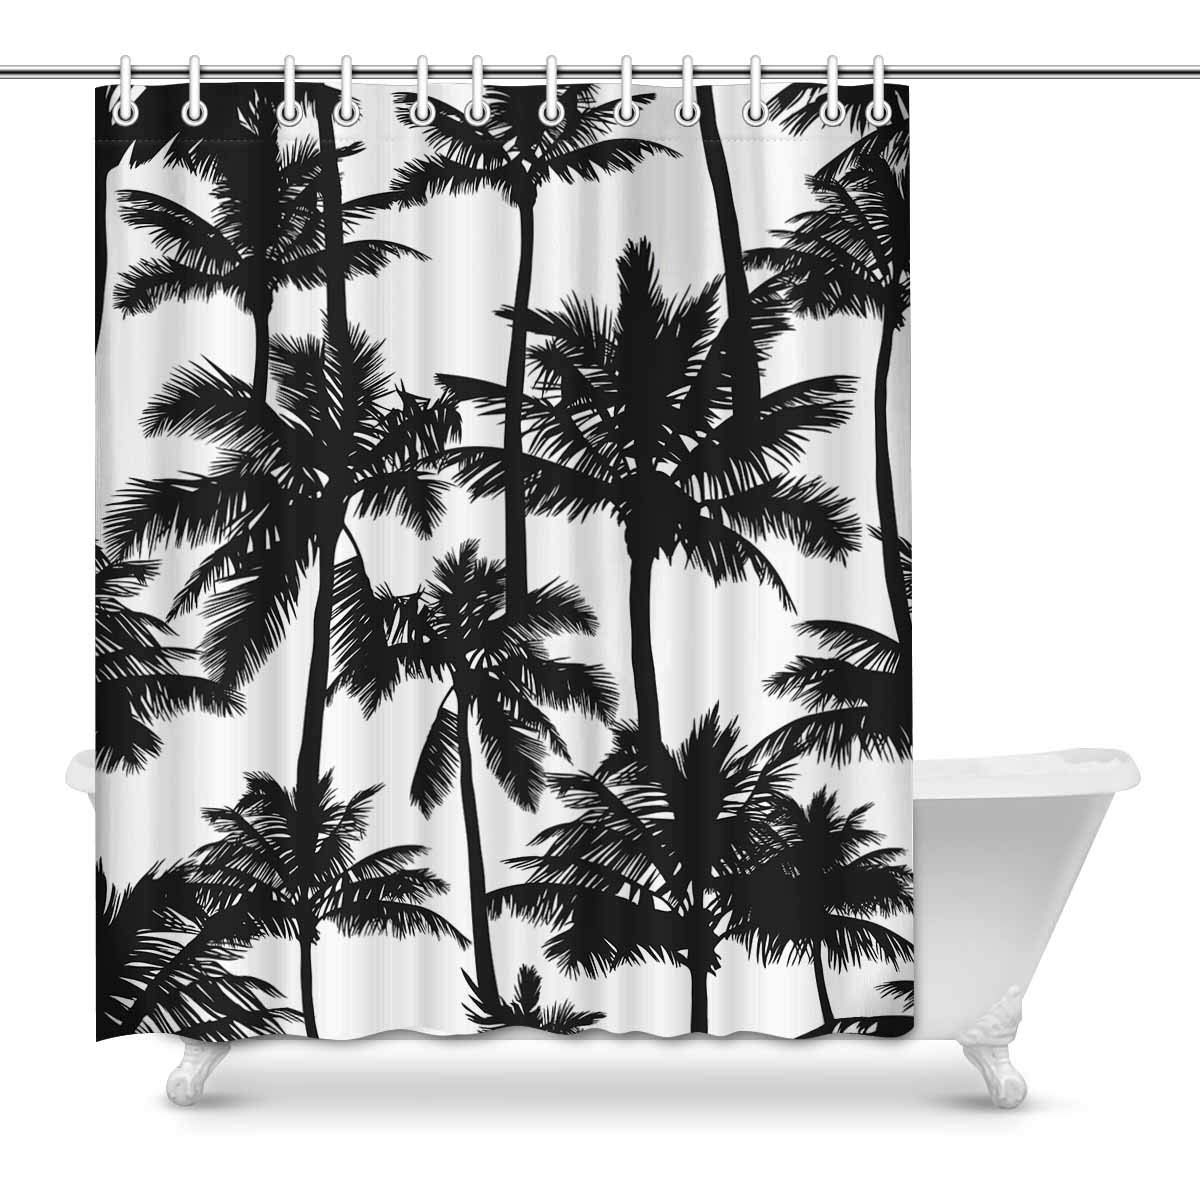 GCKG Black Vector Palm Trees Shower Curtain And White Polyester Fabric Bathroom Sets 60x72 Inches